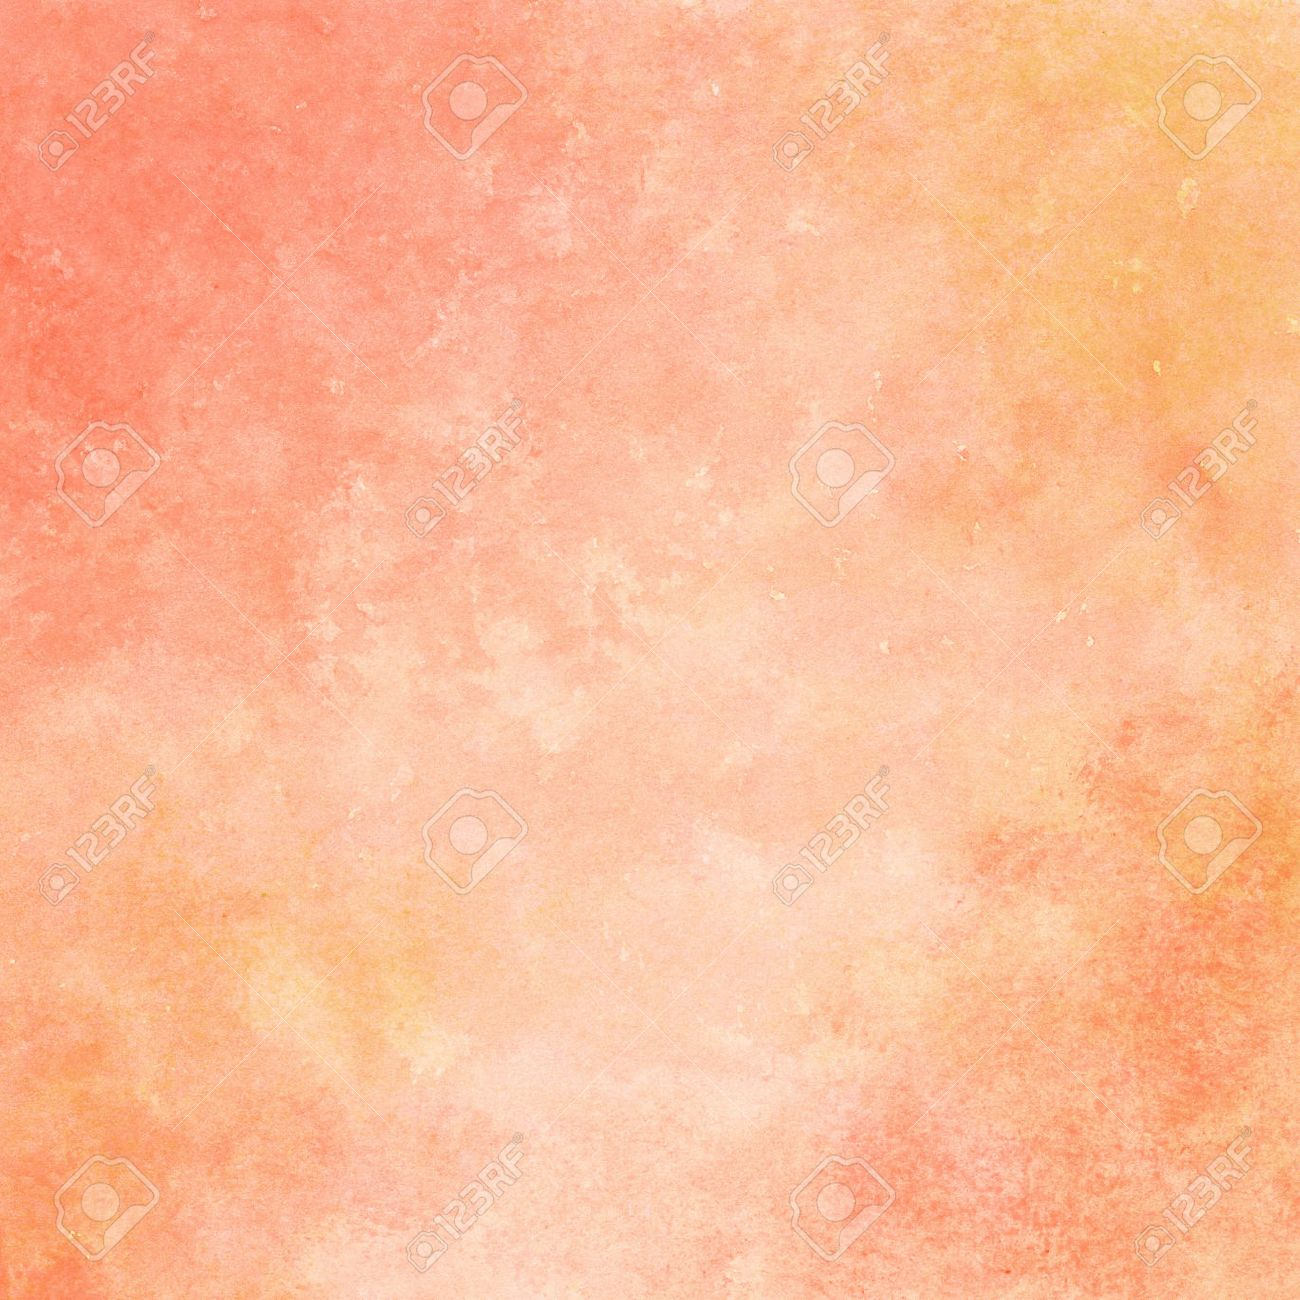 peach and orange watercolor texture background hand painted stock photo picture and royalty free image image 37326849 peach and orange watercolor texture background hand painted